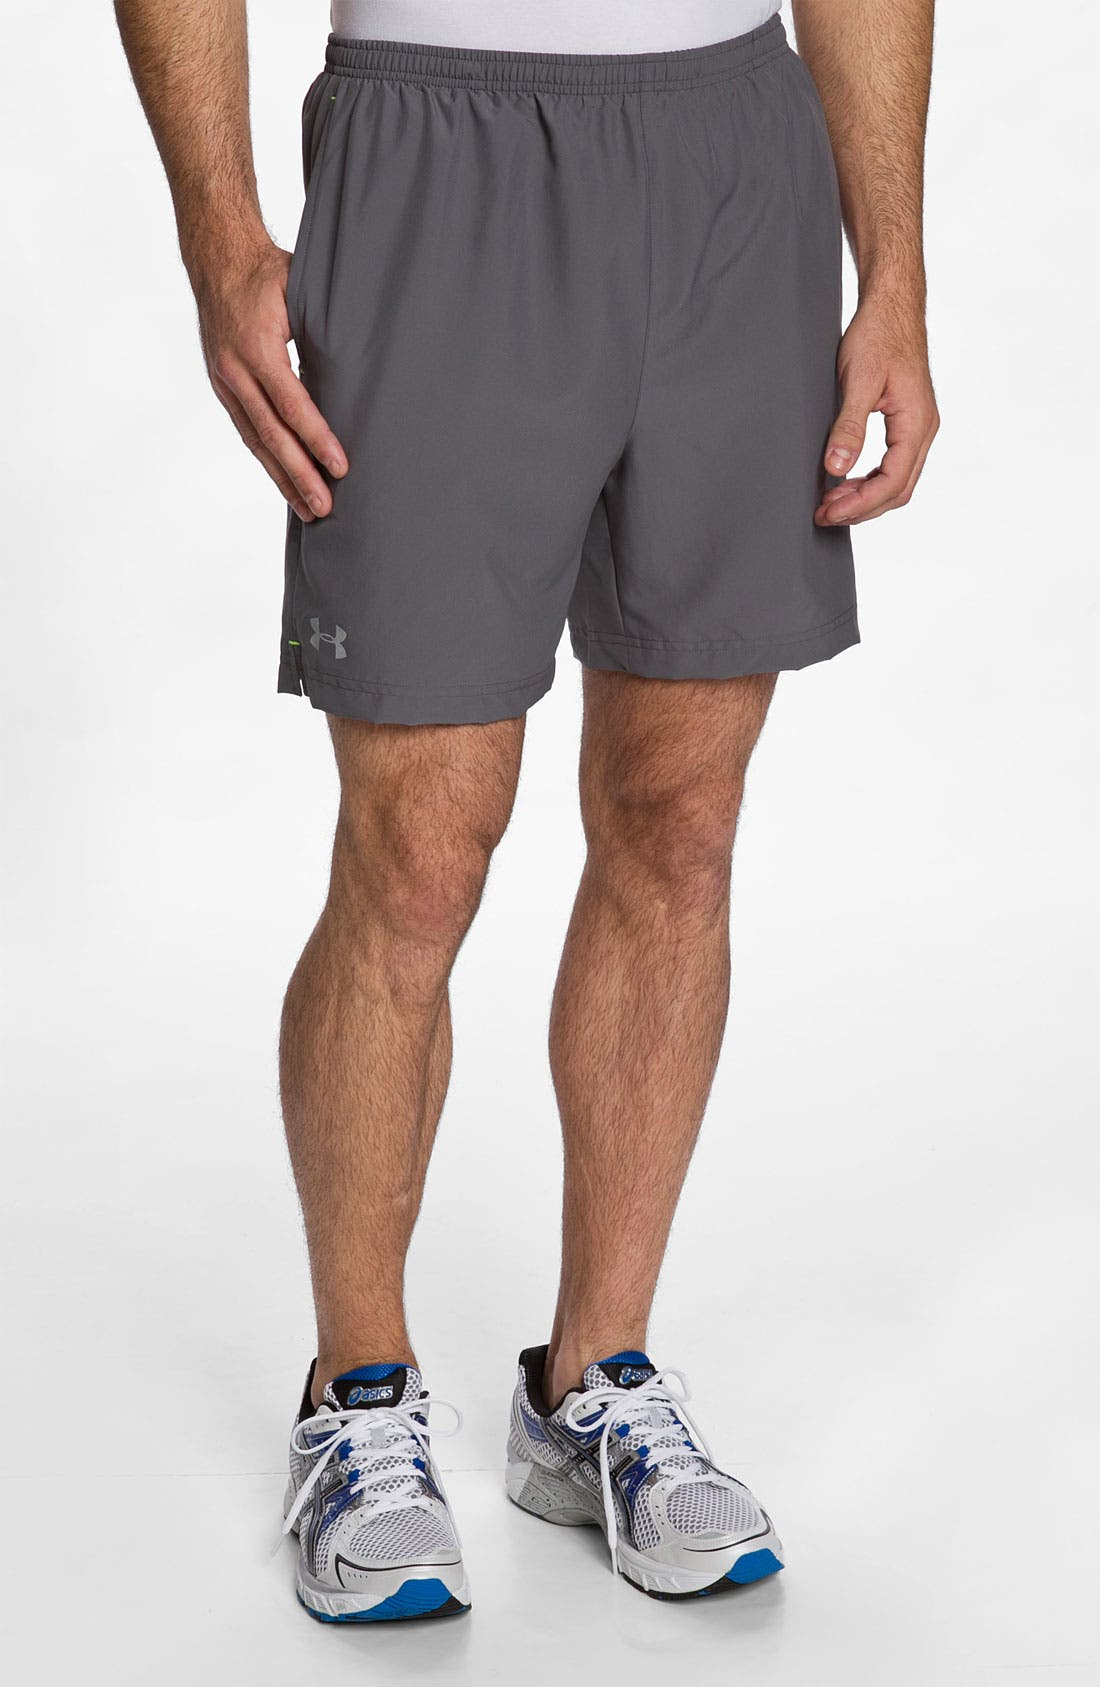 Alternate Image 1 Selected - Under Armour 'Escape' HeatGear® Shorts